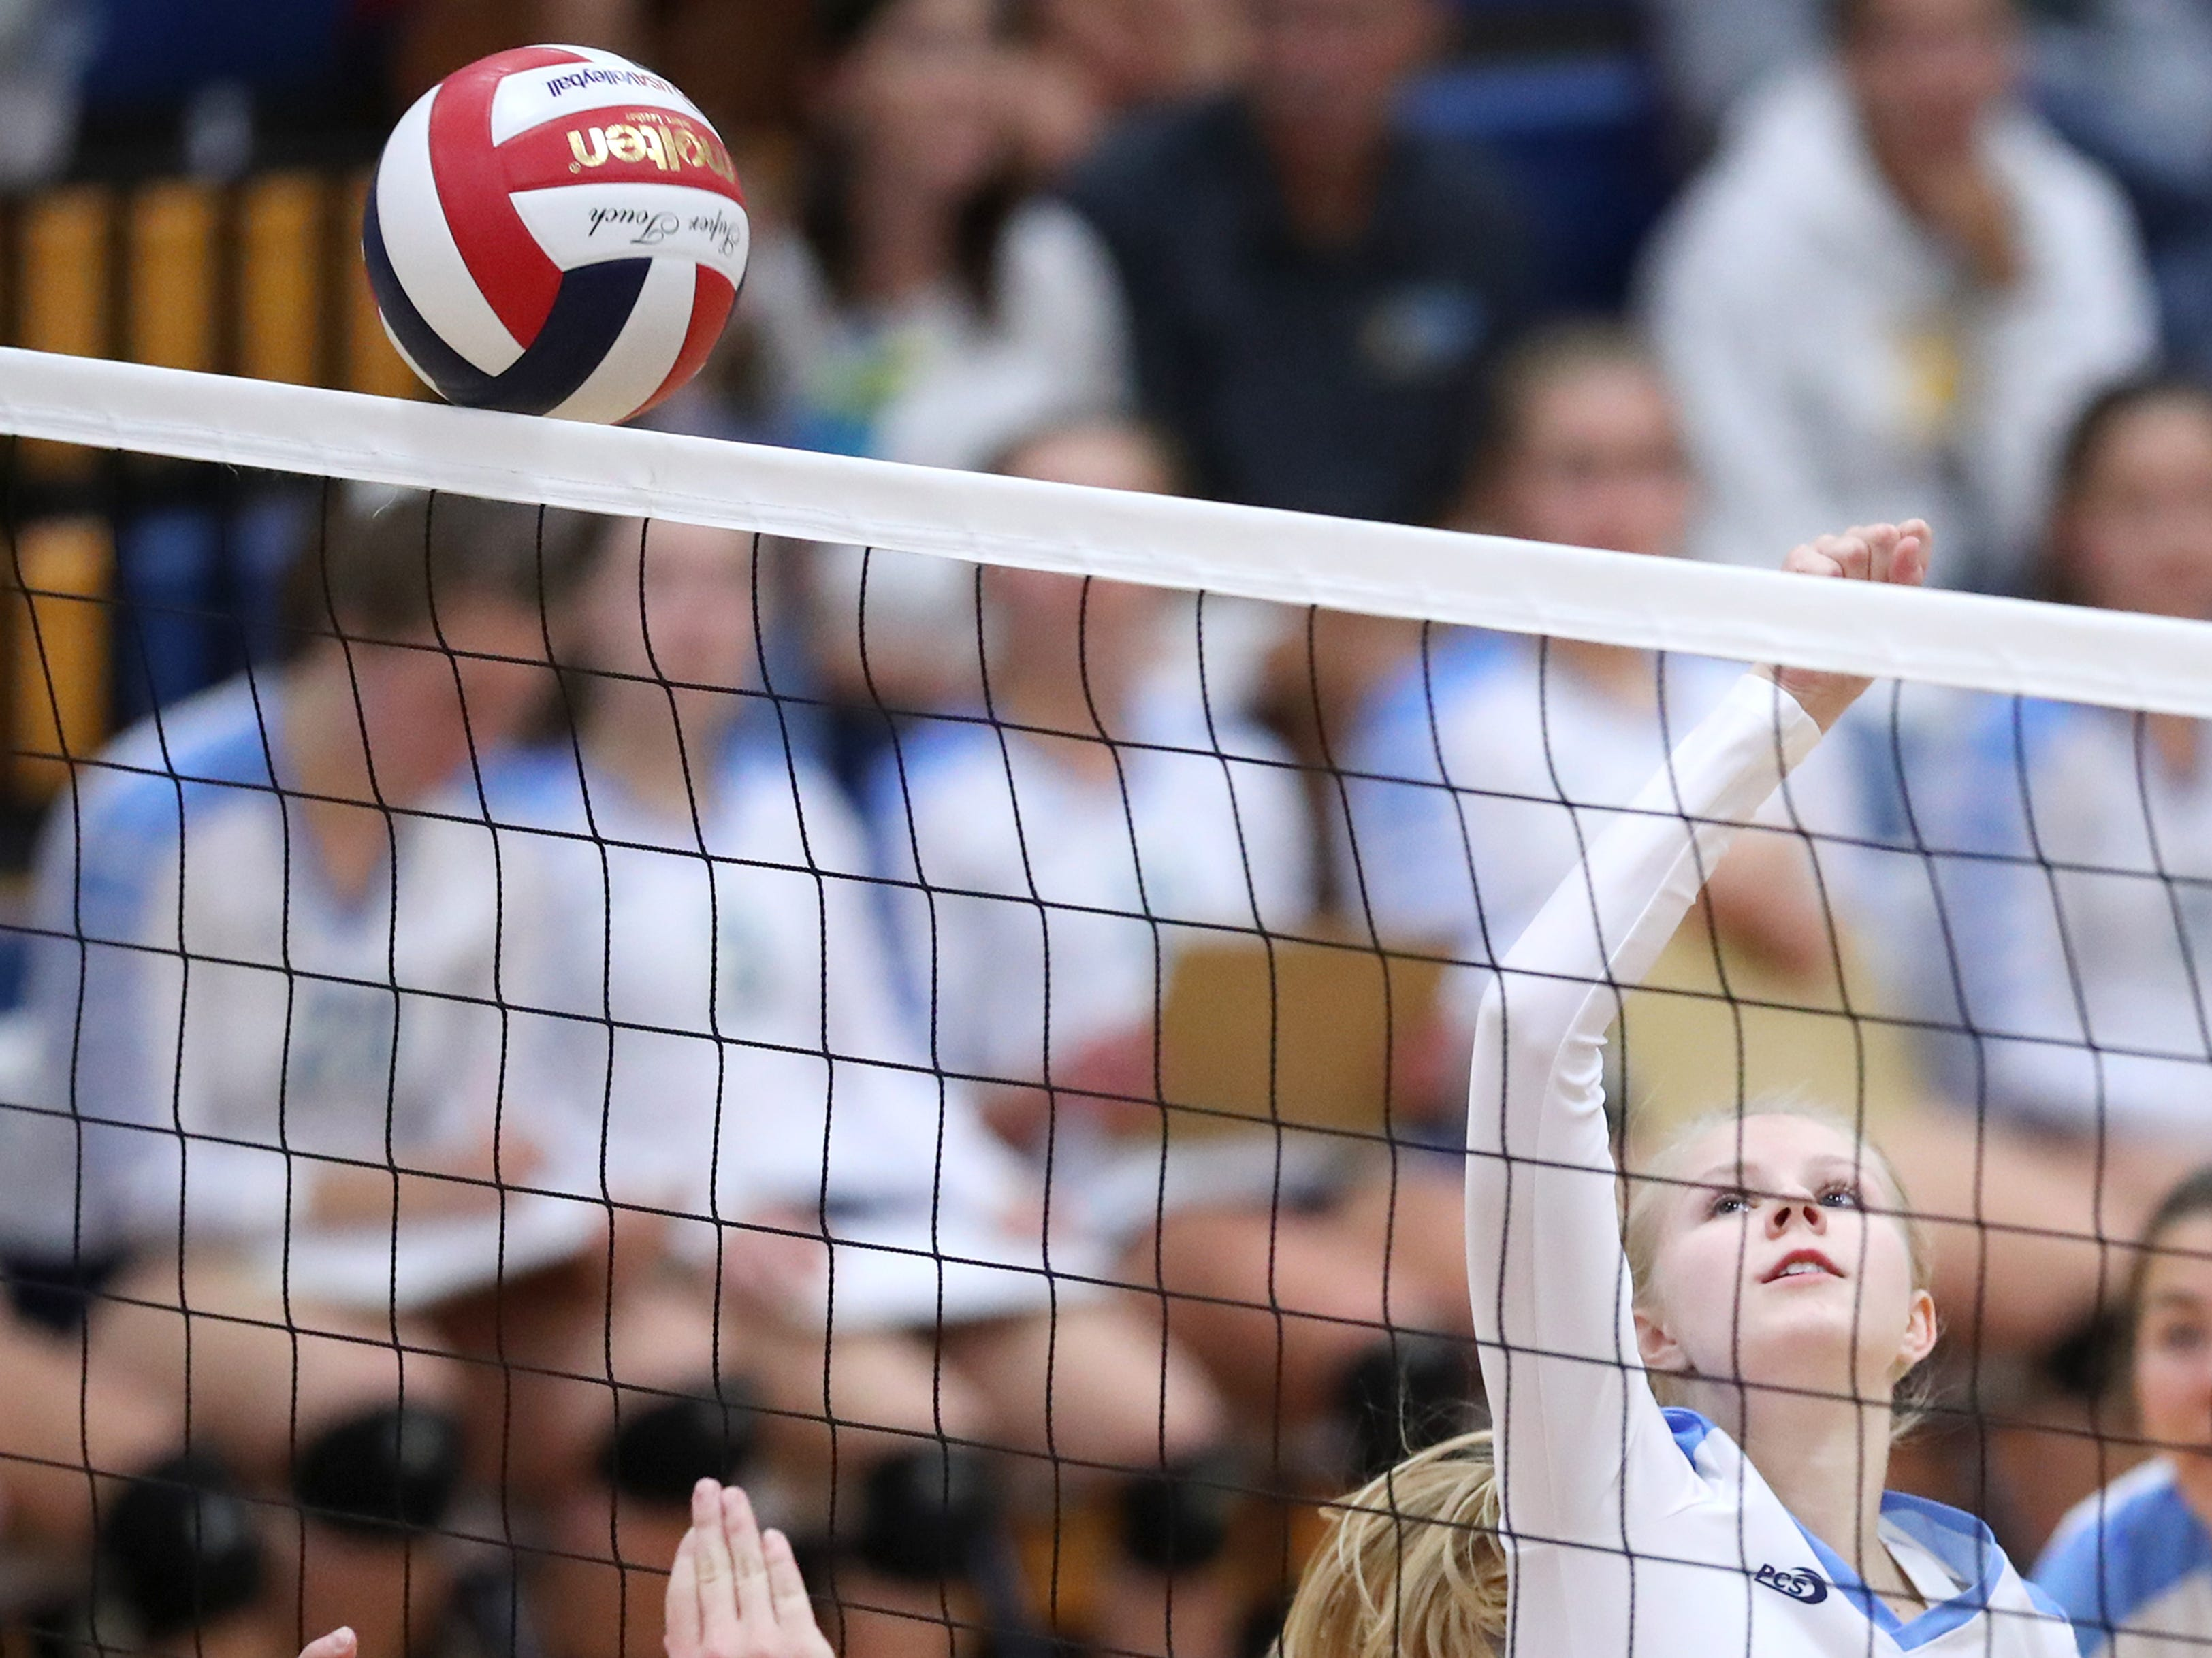 St. Mary Catholic's Katie Olson tips the ball over the net against Mishicot Thursday, Sept. 6, 2018, in Fox Crossing, Wis.